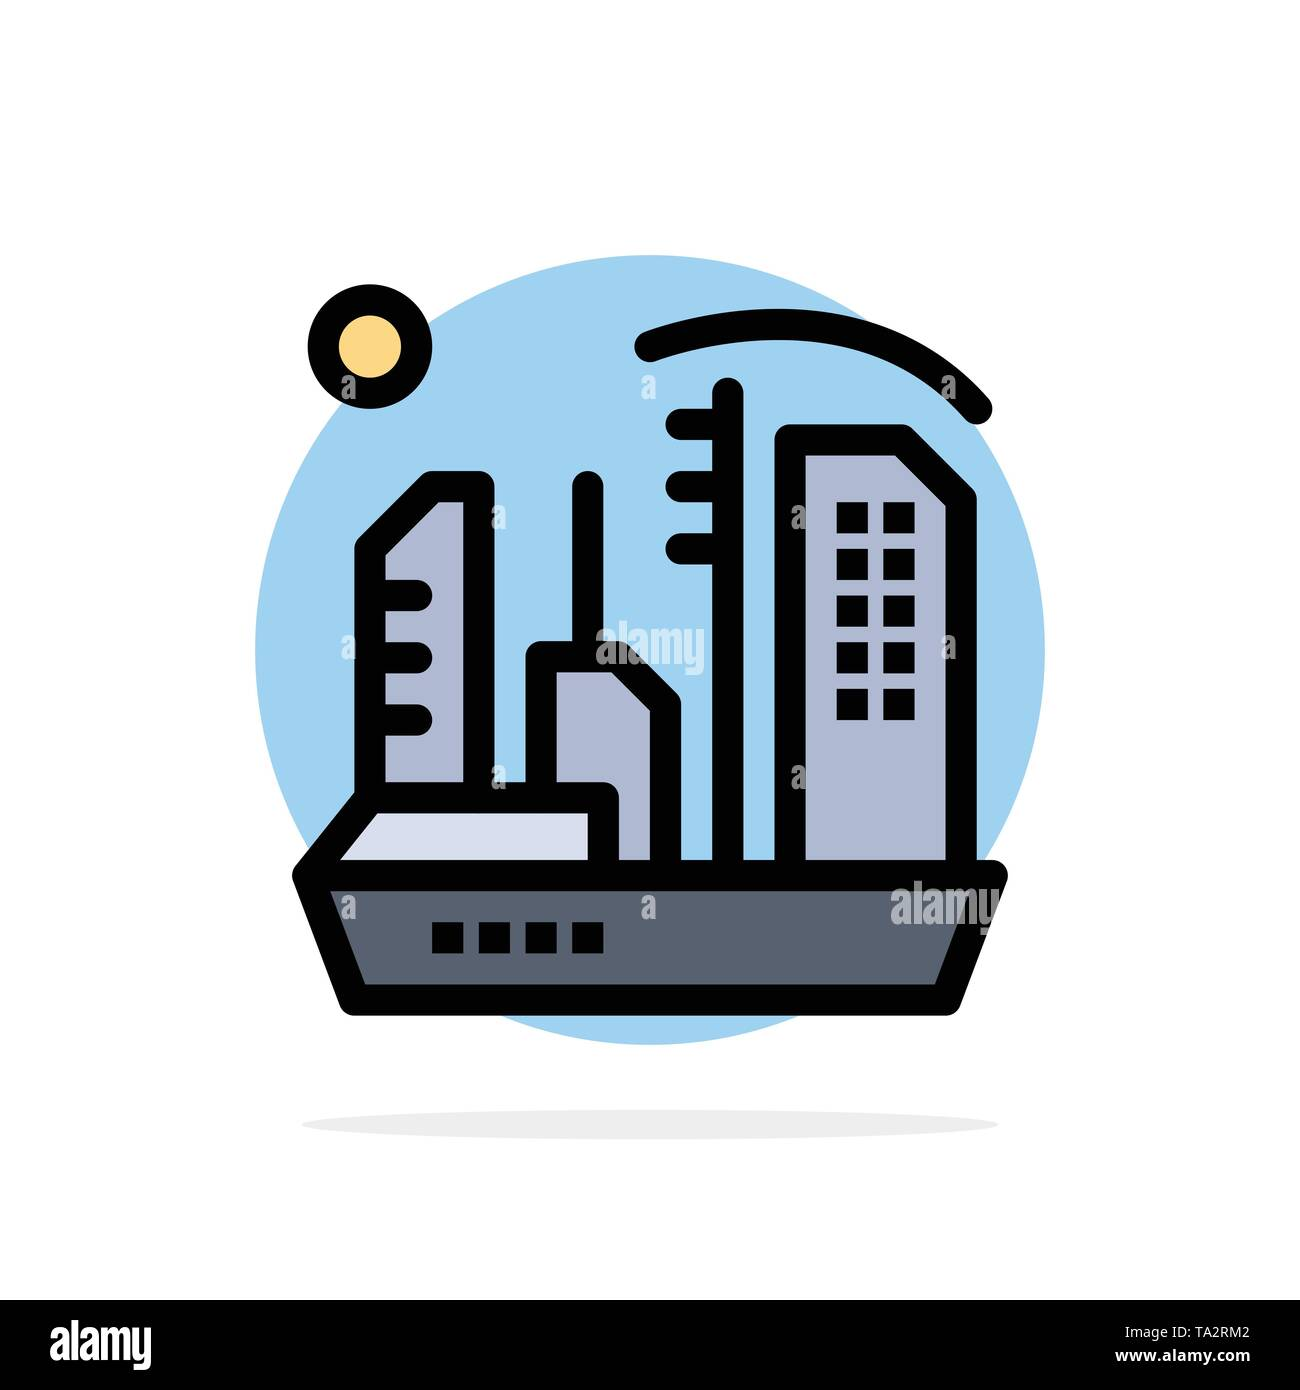 City, Colonization, Colony, Dome, Expansion Abstract Circle Background Flat color Icon - Stock Image